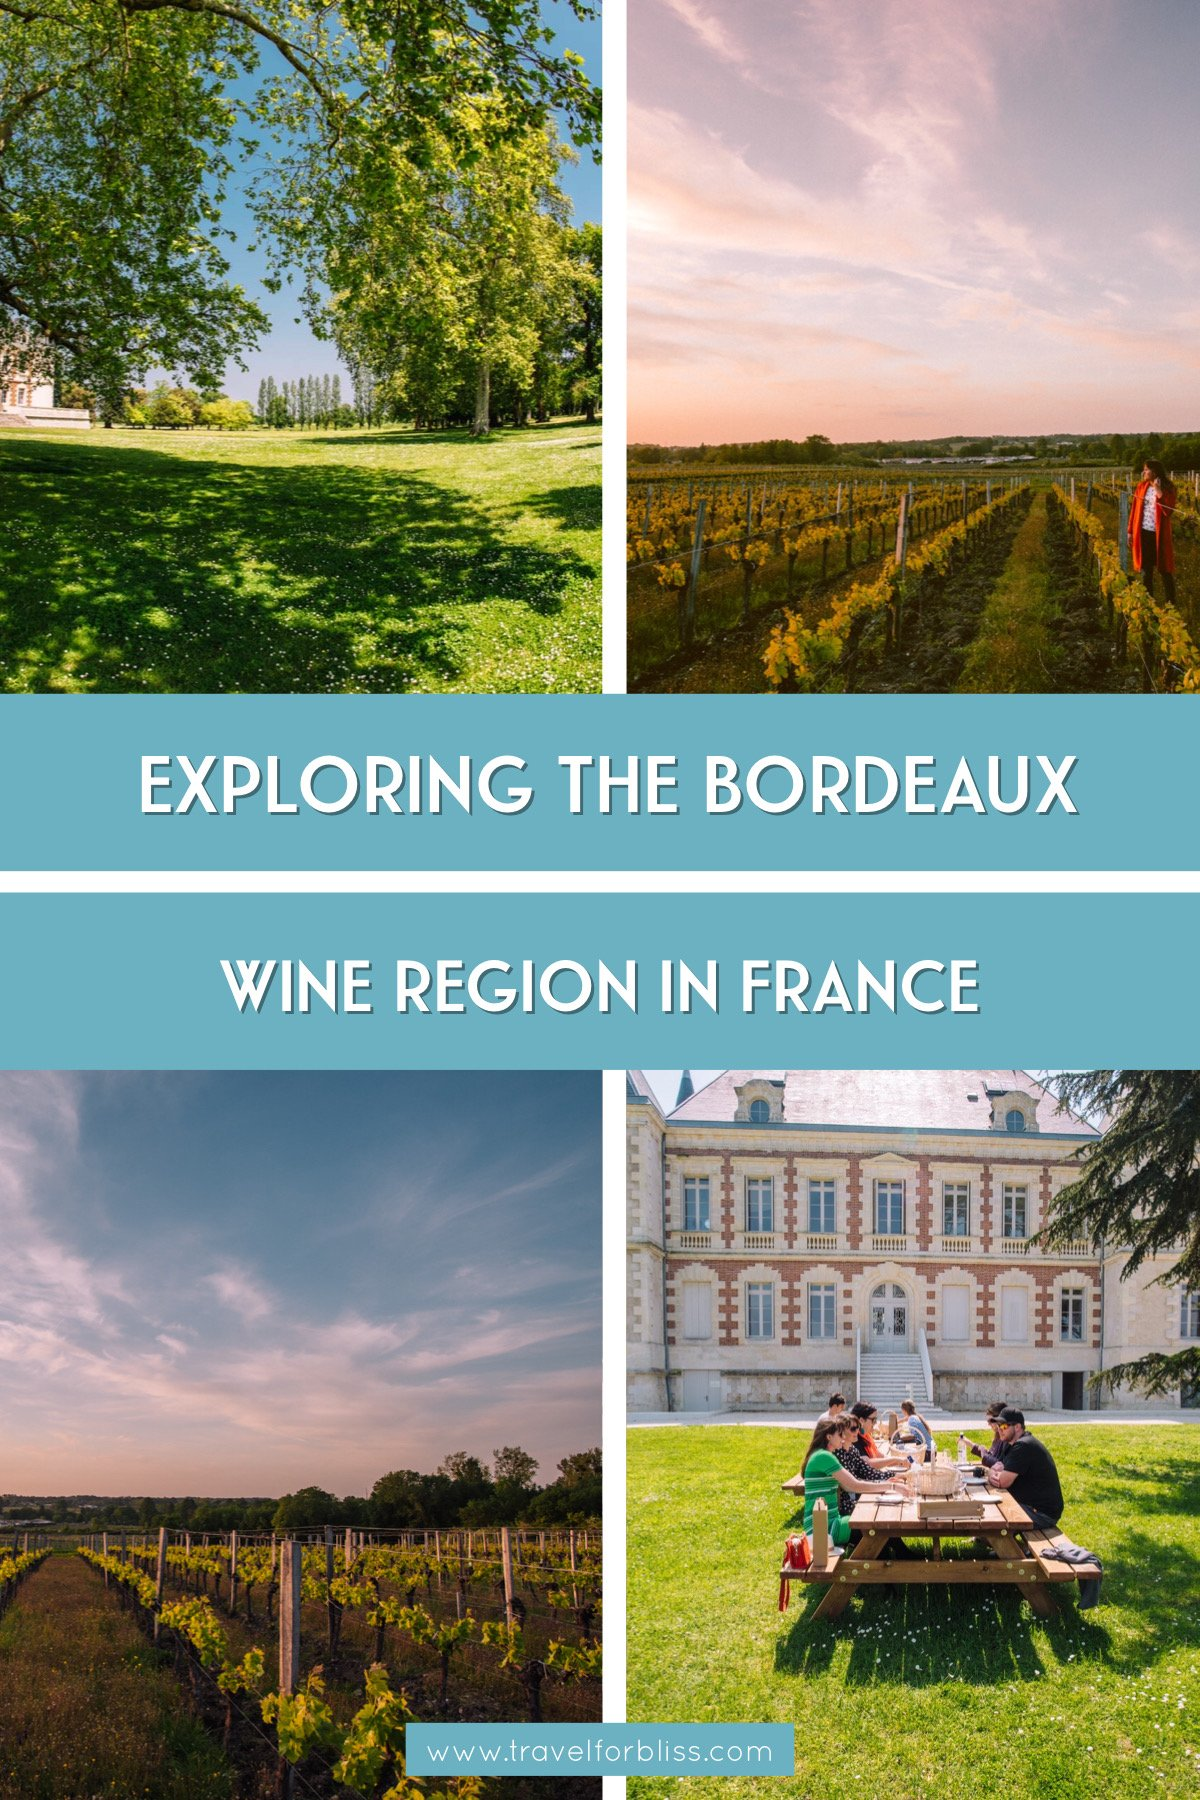 The Bordeaux wine region is a beautiful part of France to visit. There are vineyards everywhere and there is lots of delicious wine and cheese to consume. Find out what to see and do in the Bordeaux area.